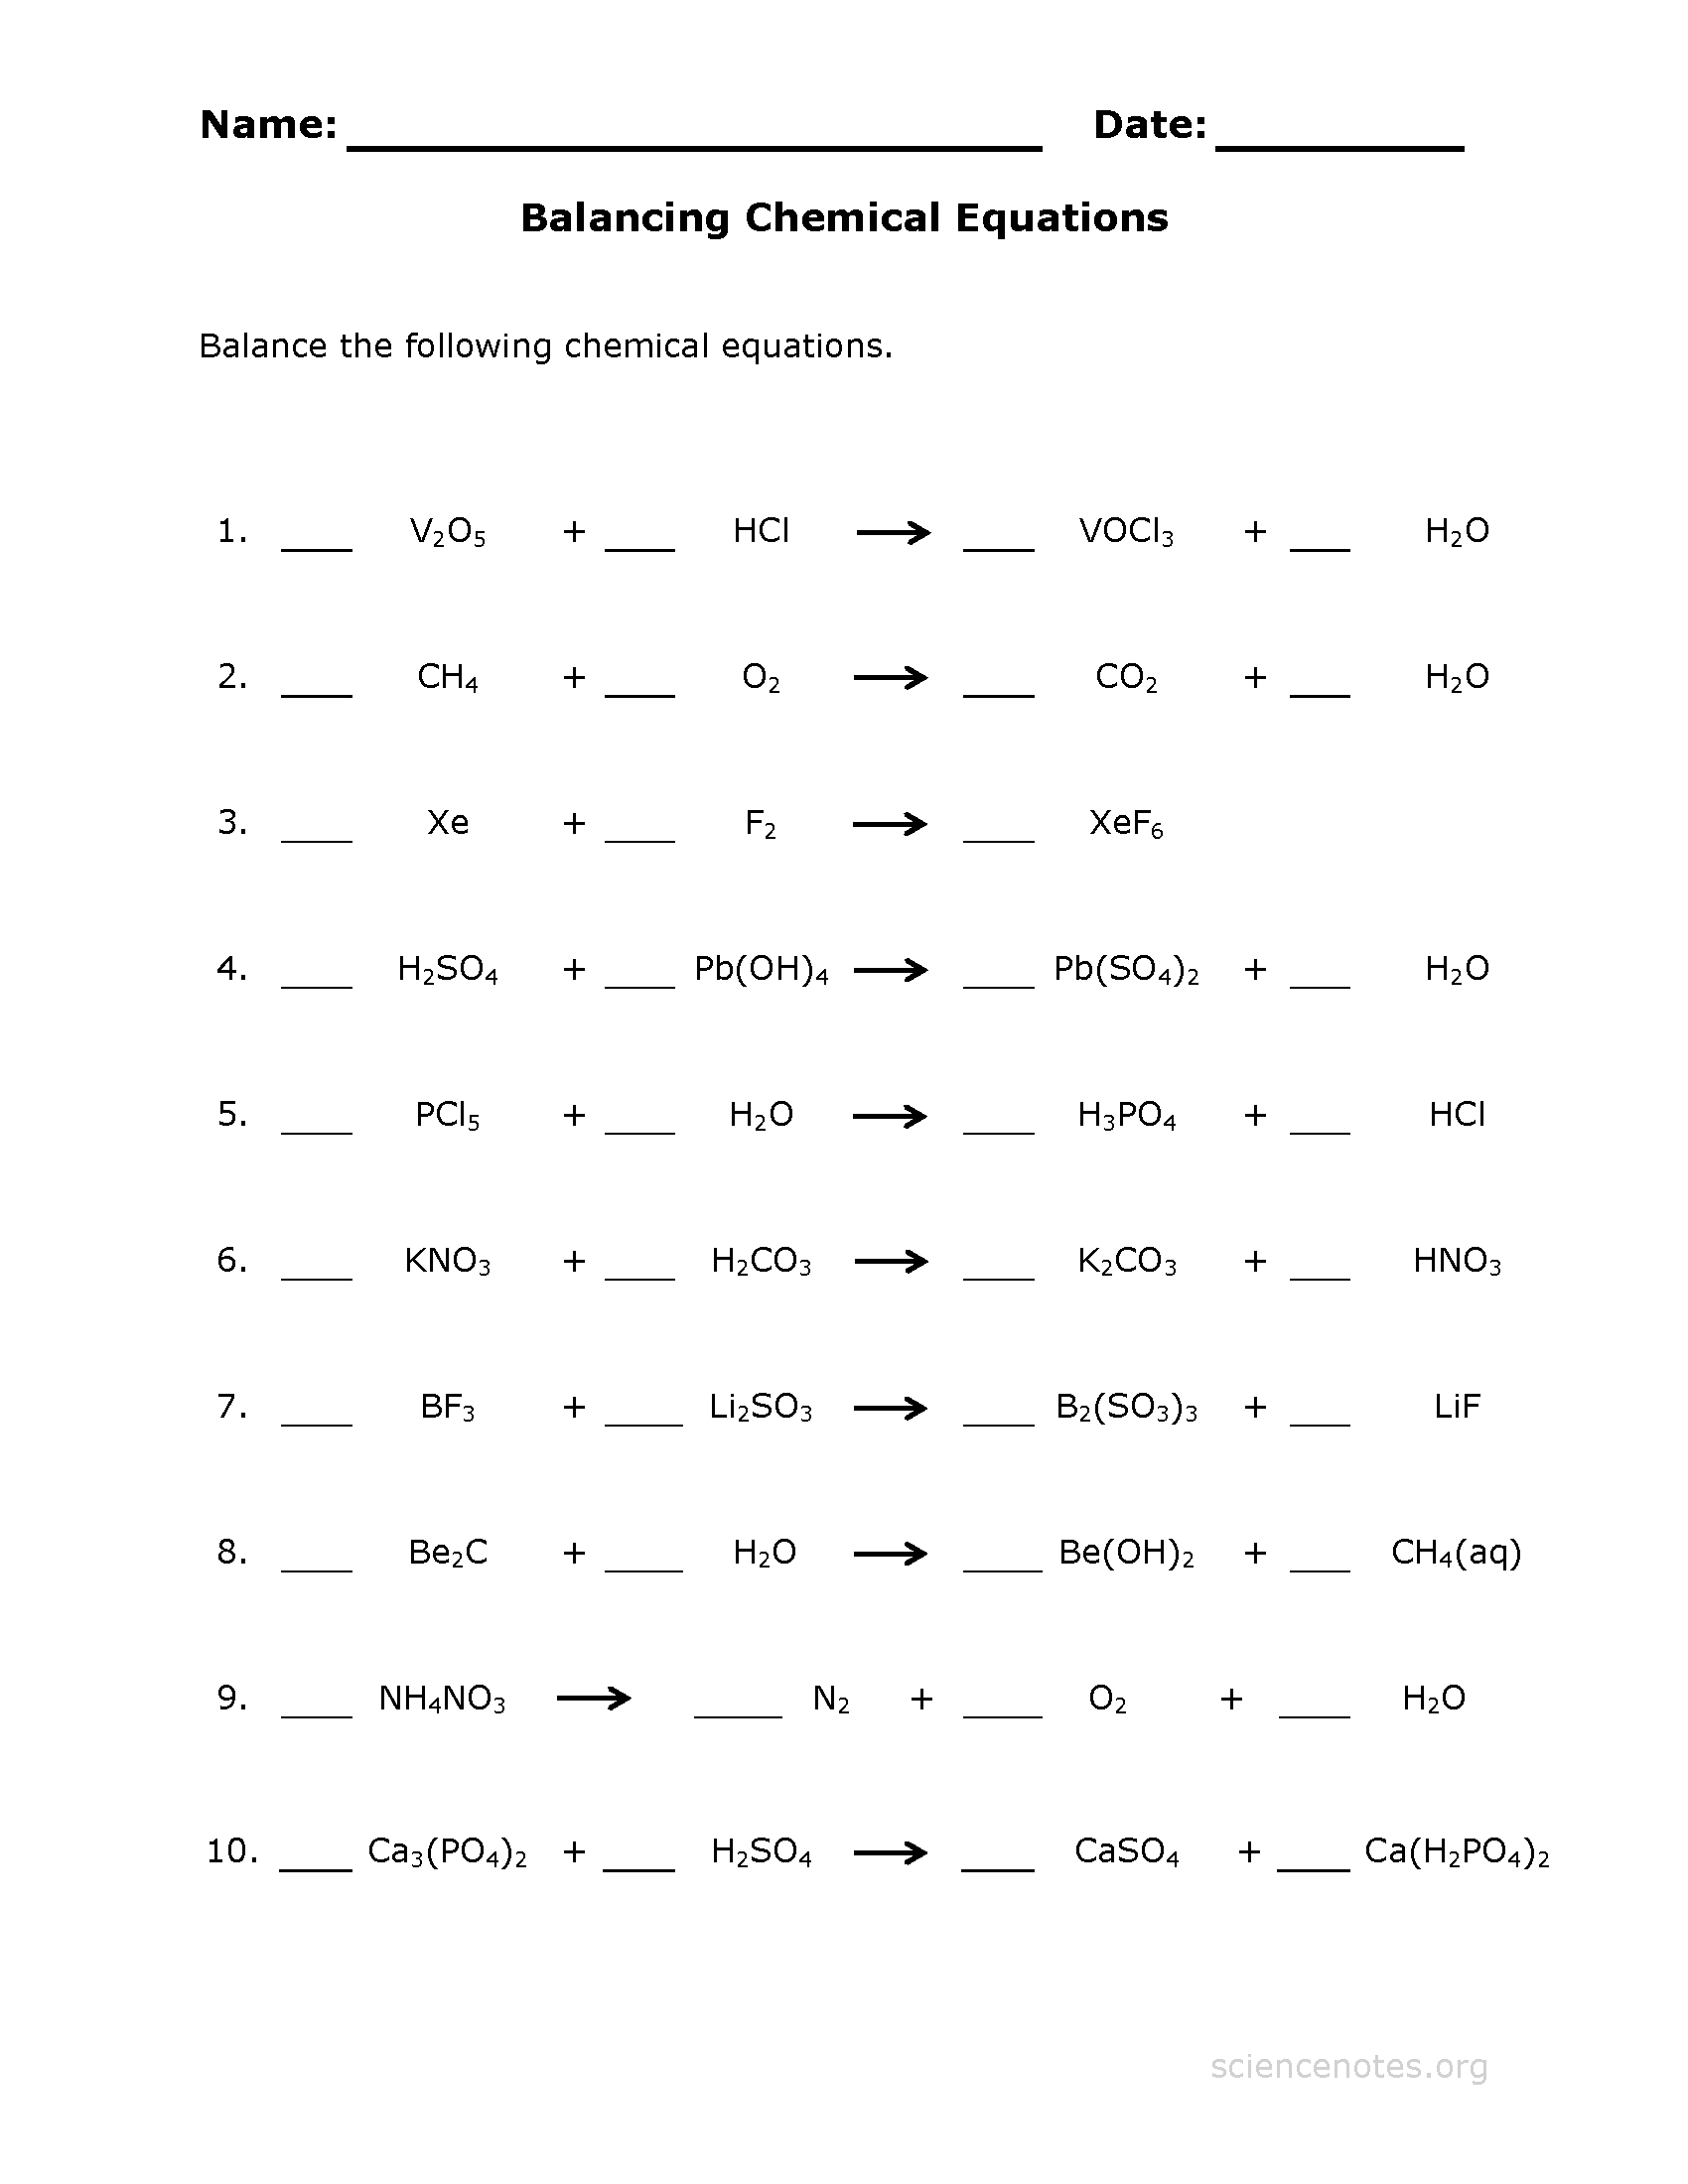 Balance Chemical Equations Worksheet